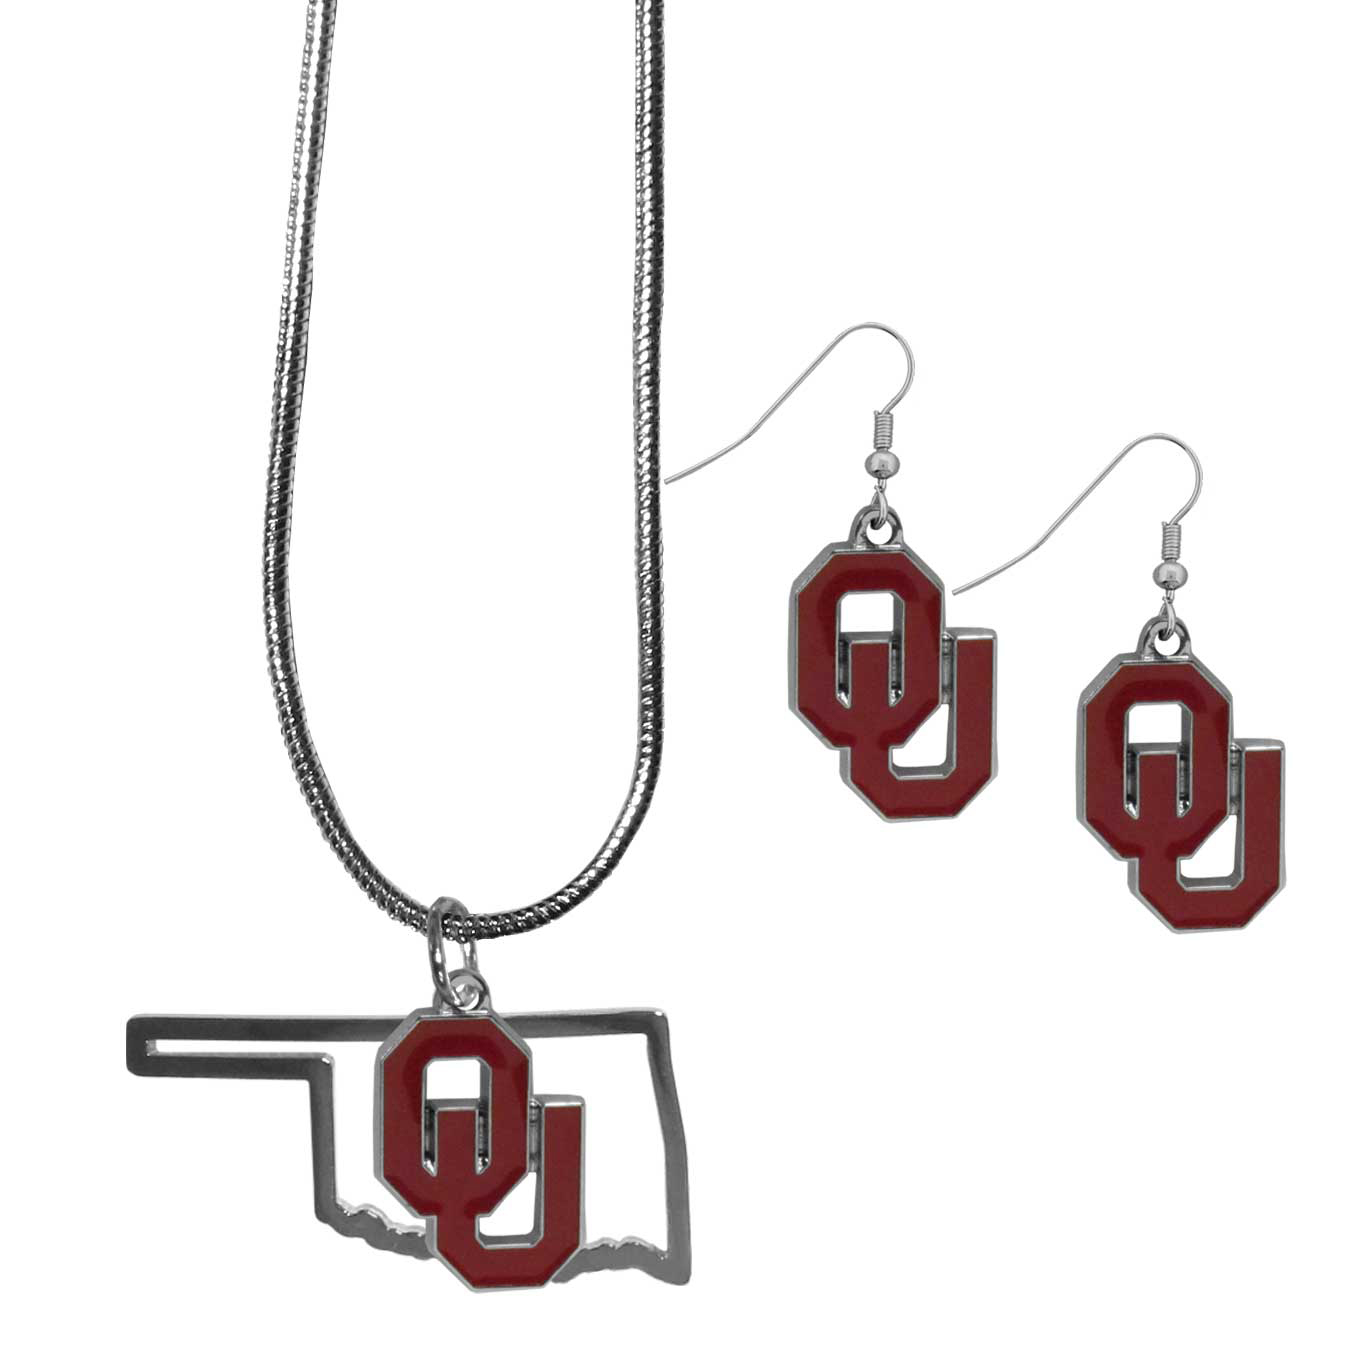 Oklahoma Sooners Dangle Earrings and State Necklace Set - Get in on the trend! State themes are a trend that just keeps getting more popular and this jewelry set takes the state style and give it a sporty twist with a Oklahoma Sooners necklace that features an Arizona state outline charm paired with a beautiful team charm and matching team charm dangle earrings. The earrings feature hypoallergenic fishhook posts that are nickel free.